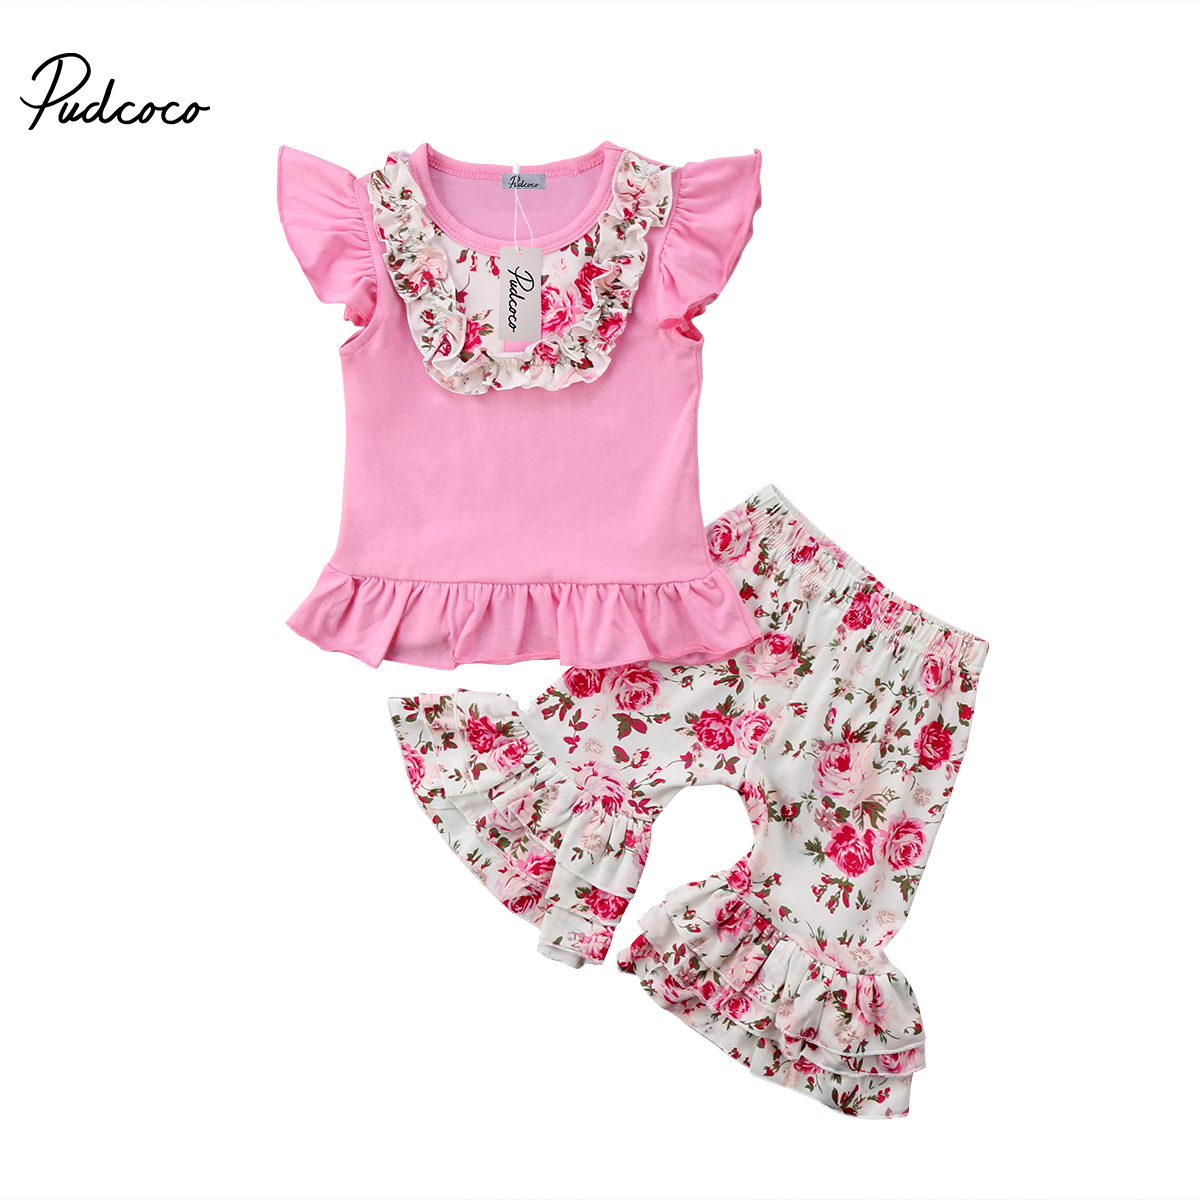 Floral Toddler Kid Baby Girl Clothes Sets T-shirt Top Short Sleeve Ruffle Pants Cotton Cute 2pcs Clothing Set Girls 2-7T fashion brand autumn children girl clothes toddler girl clothing sets cute cat long sleeve tshirt and overalls kid girl clothes